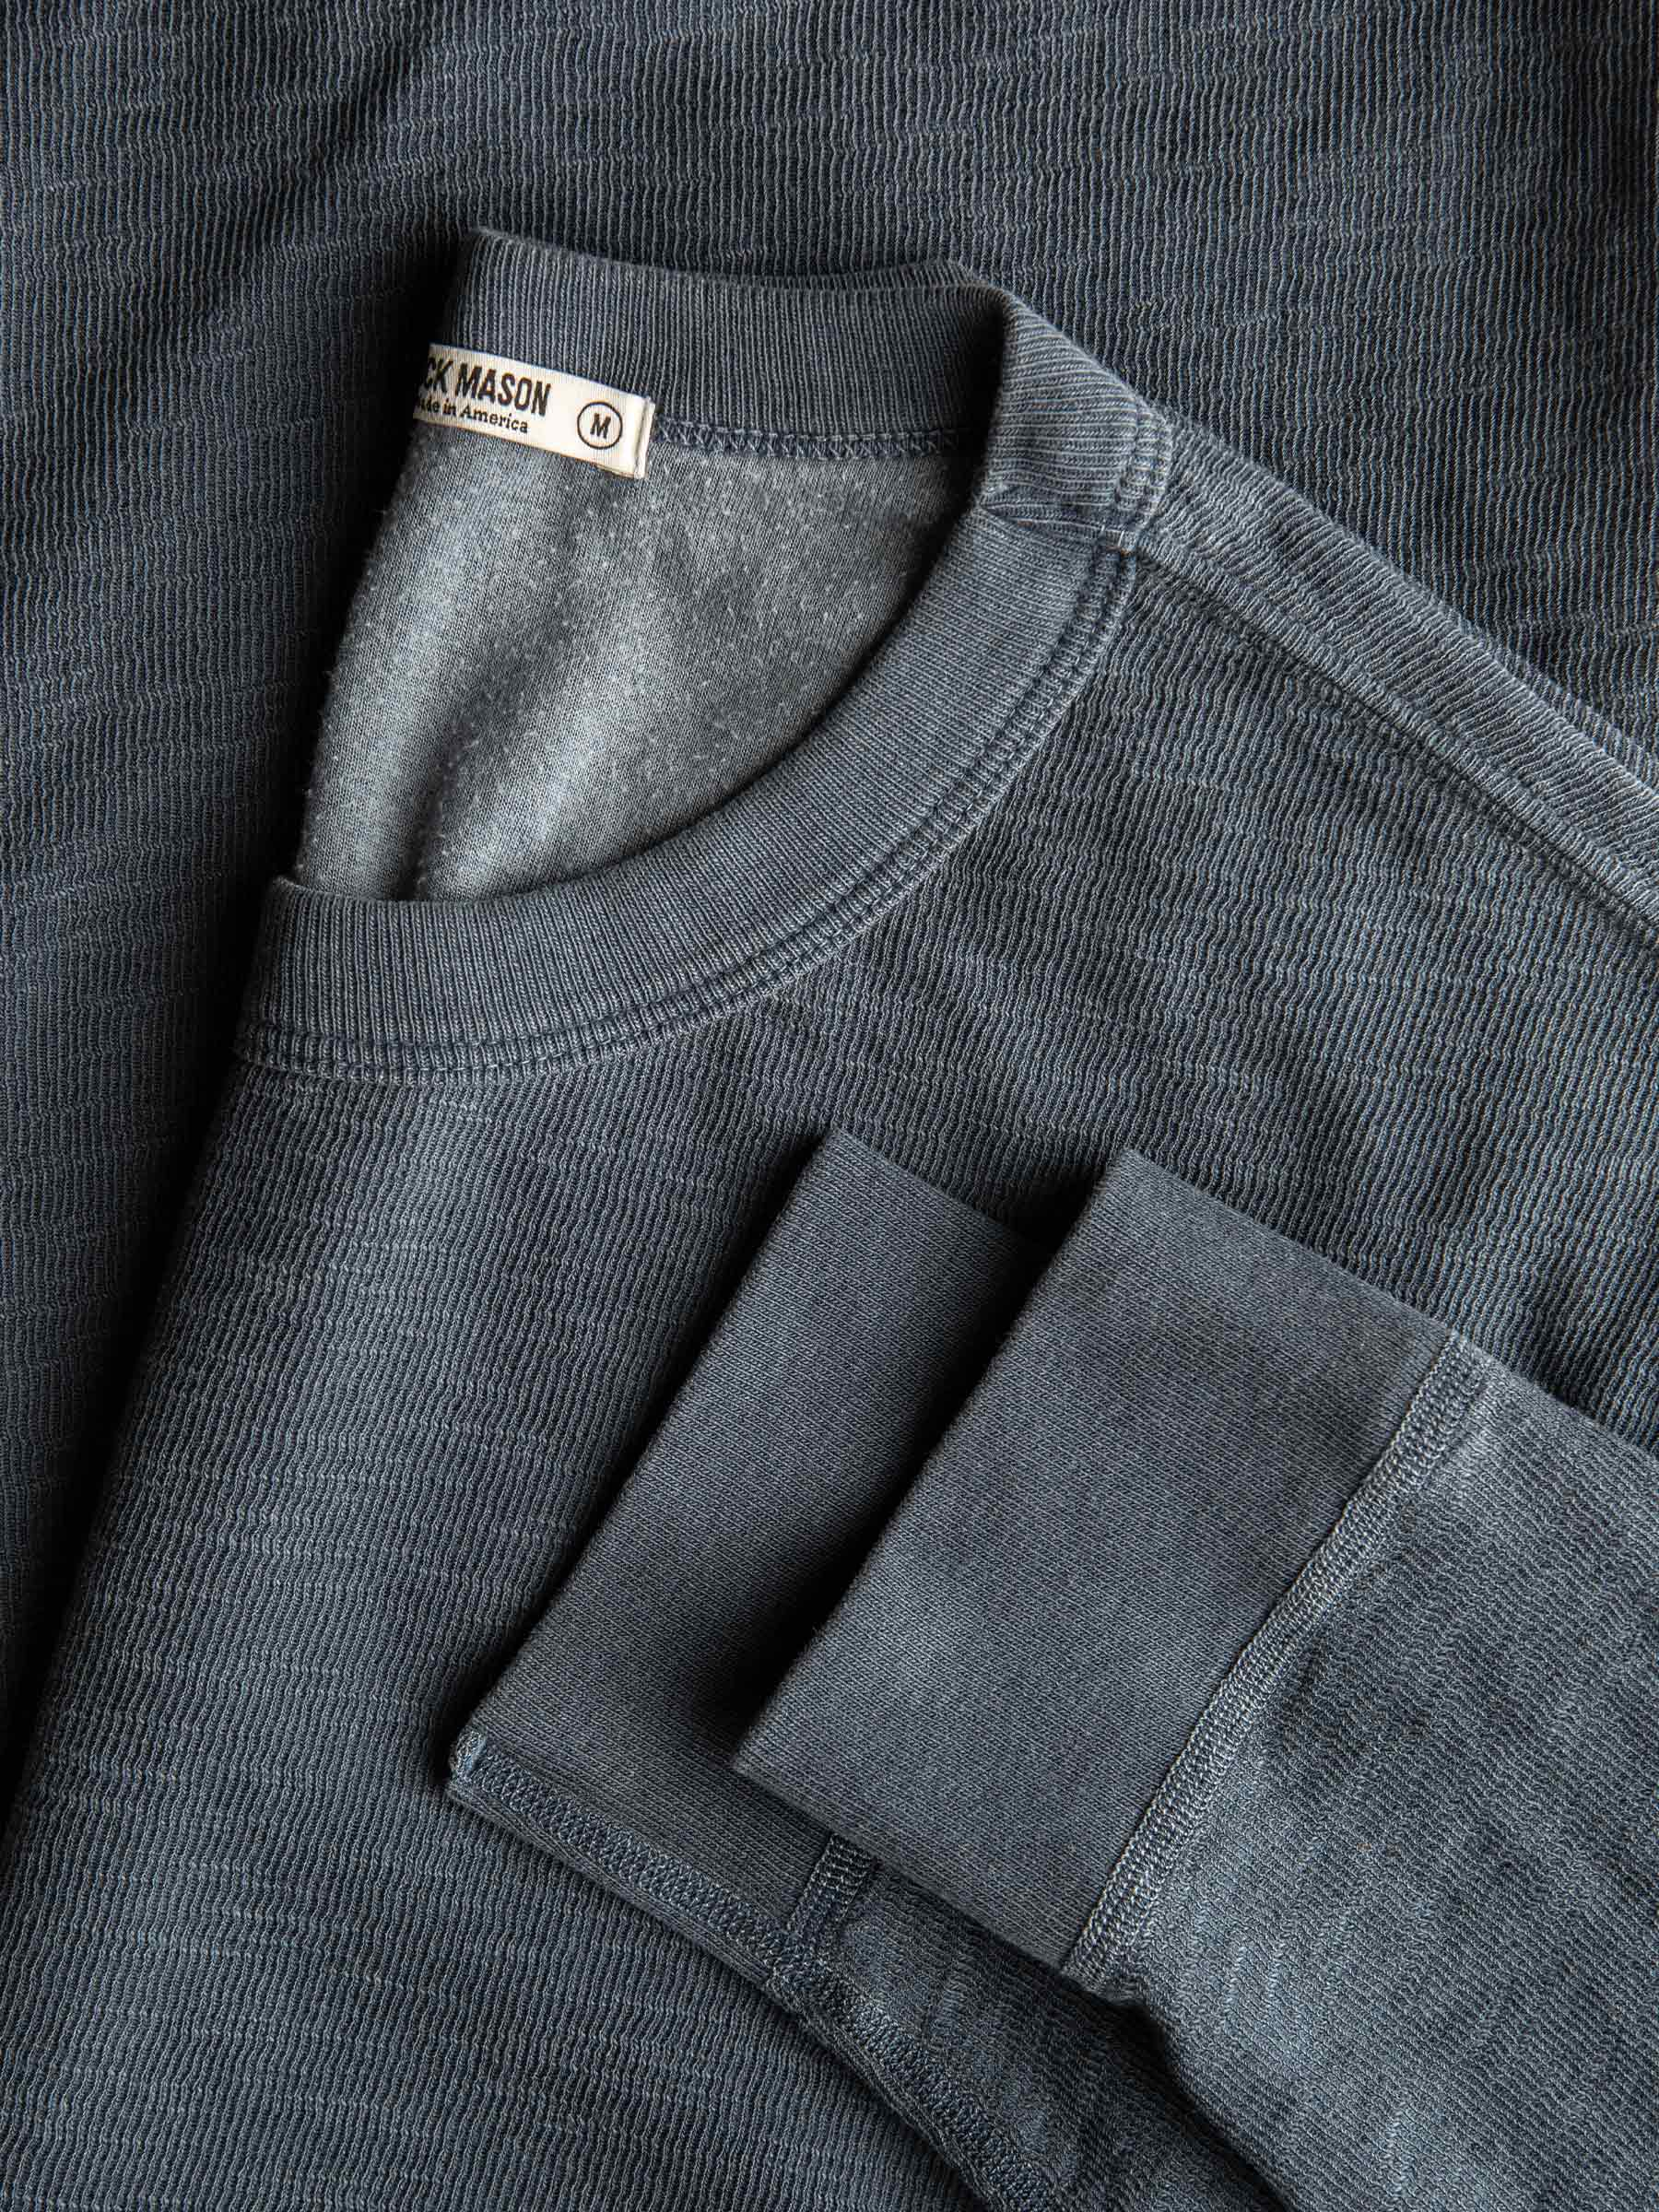 Buck Mason - Coal Lightweight Double Slub Sweatshirt